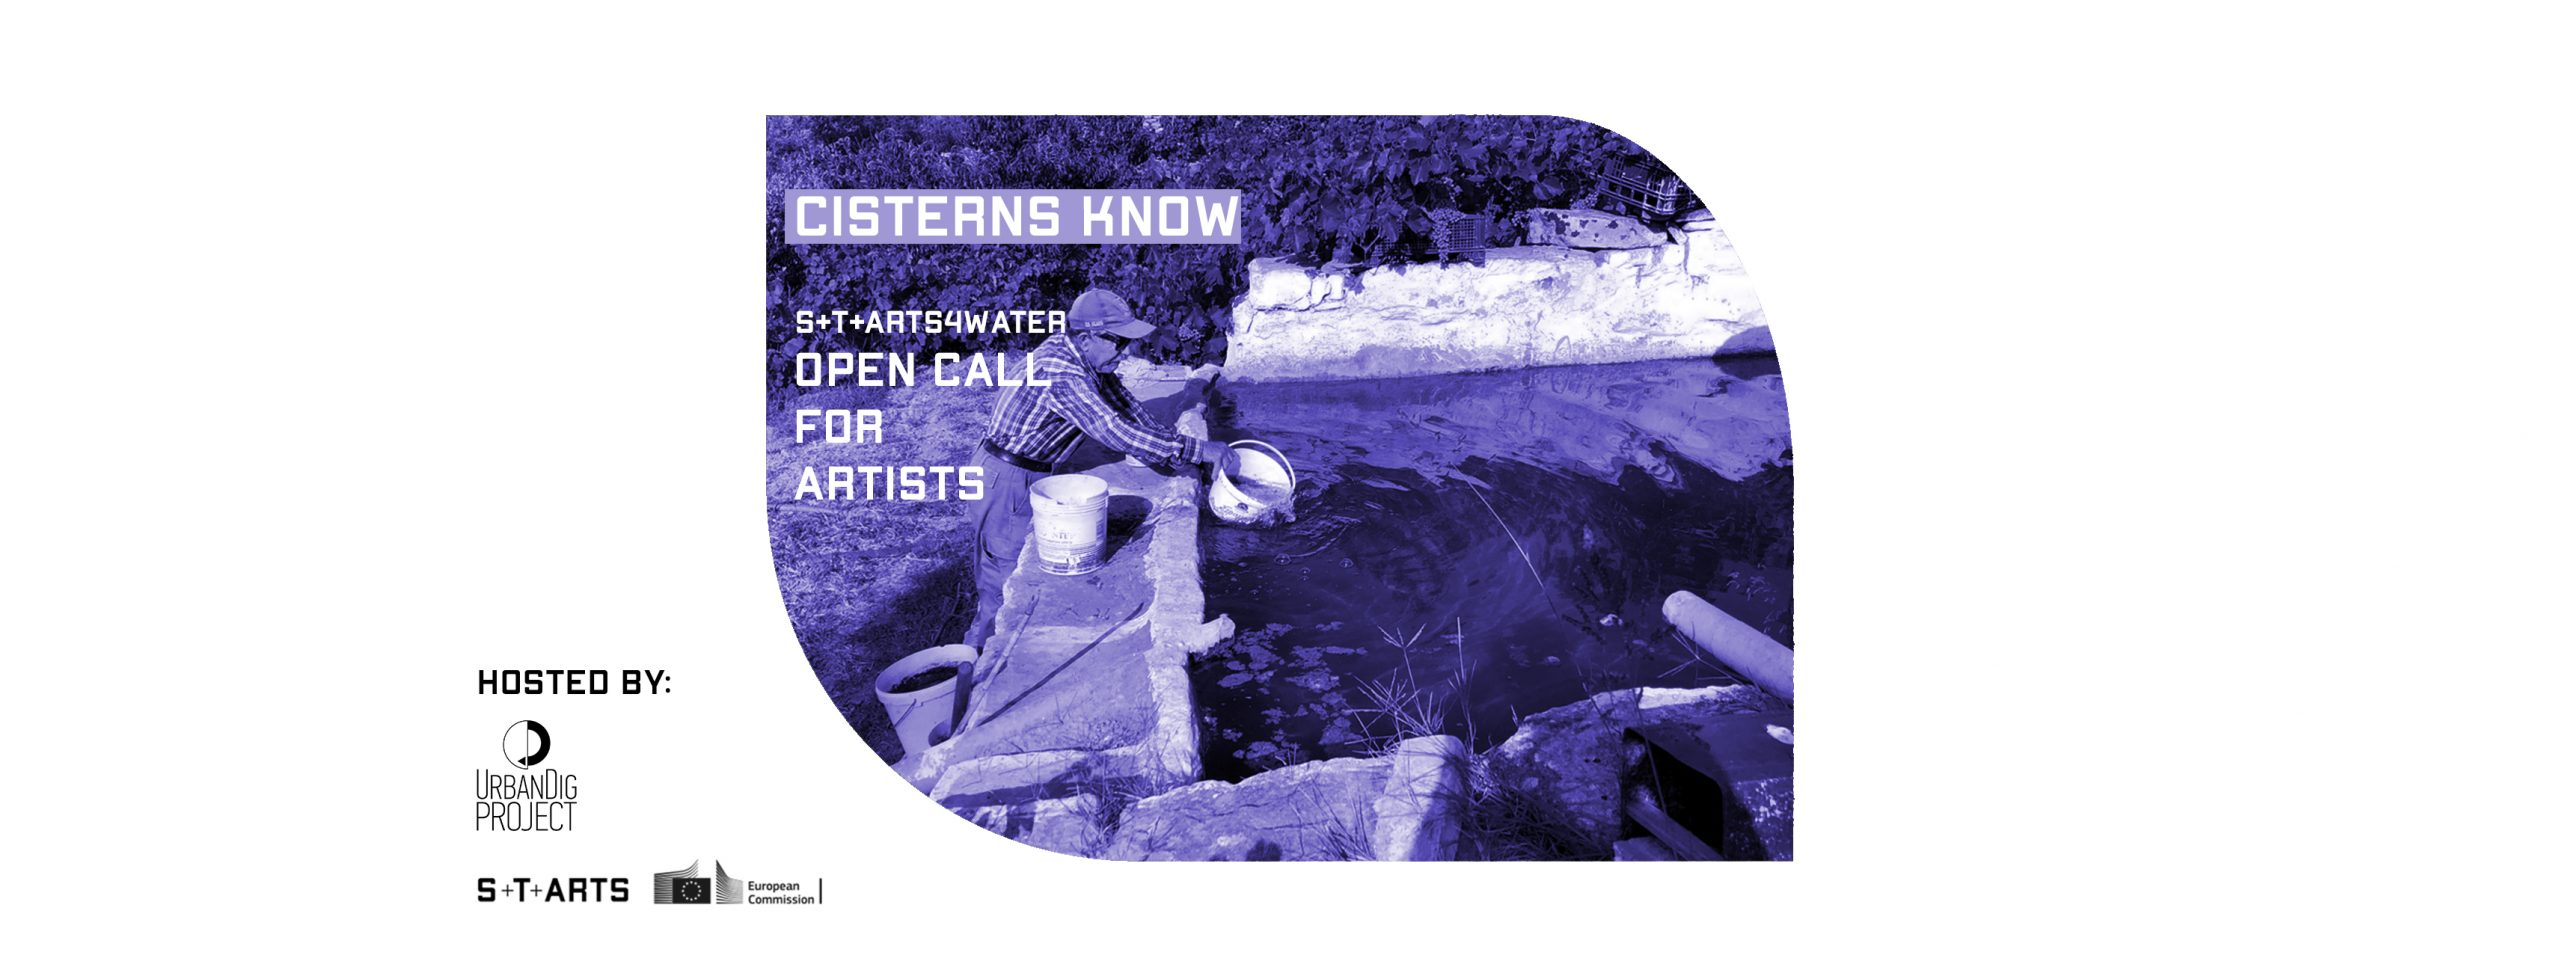 STARTS4Water | open call